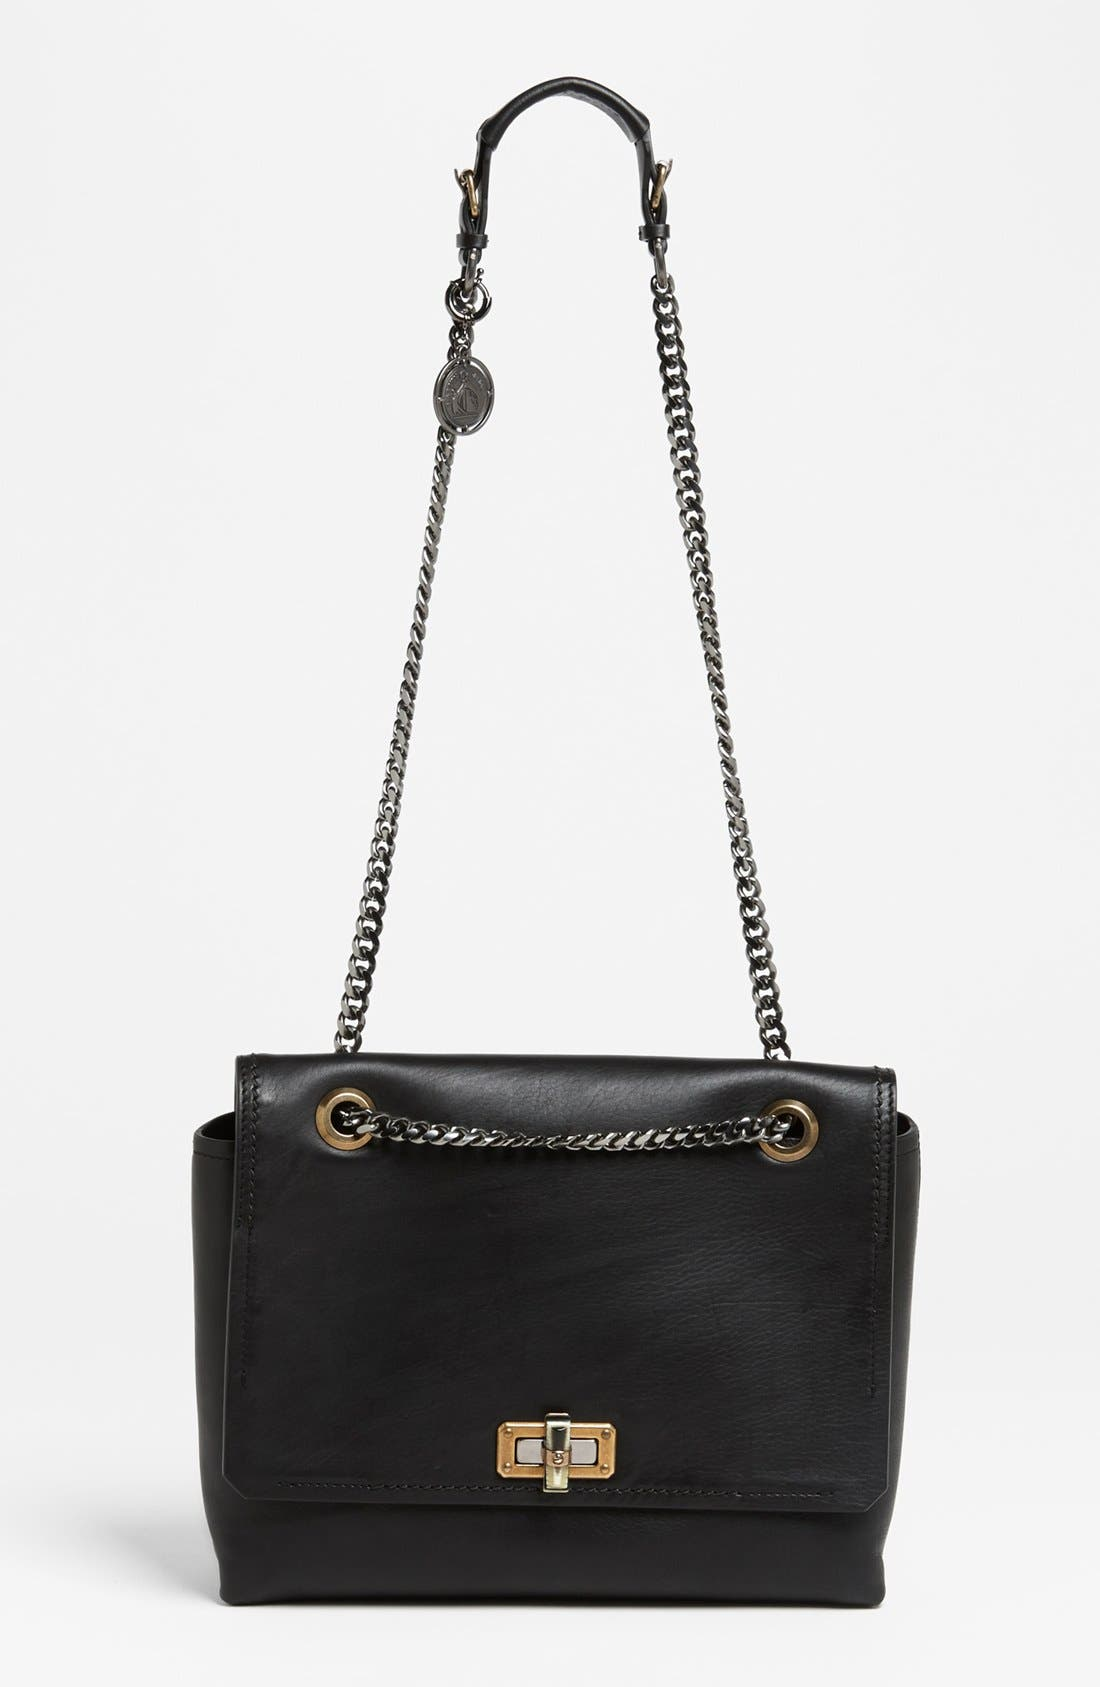 Alternate Image 1 Selected - Lanvin 'Happy - Medium' Leather Flap Shoulder Bag